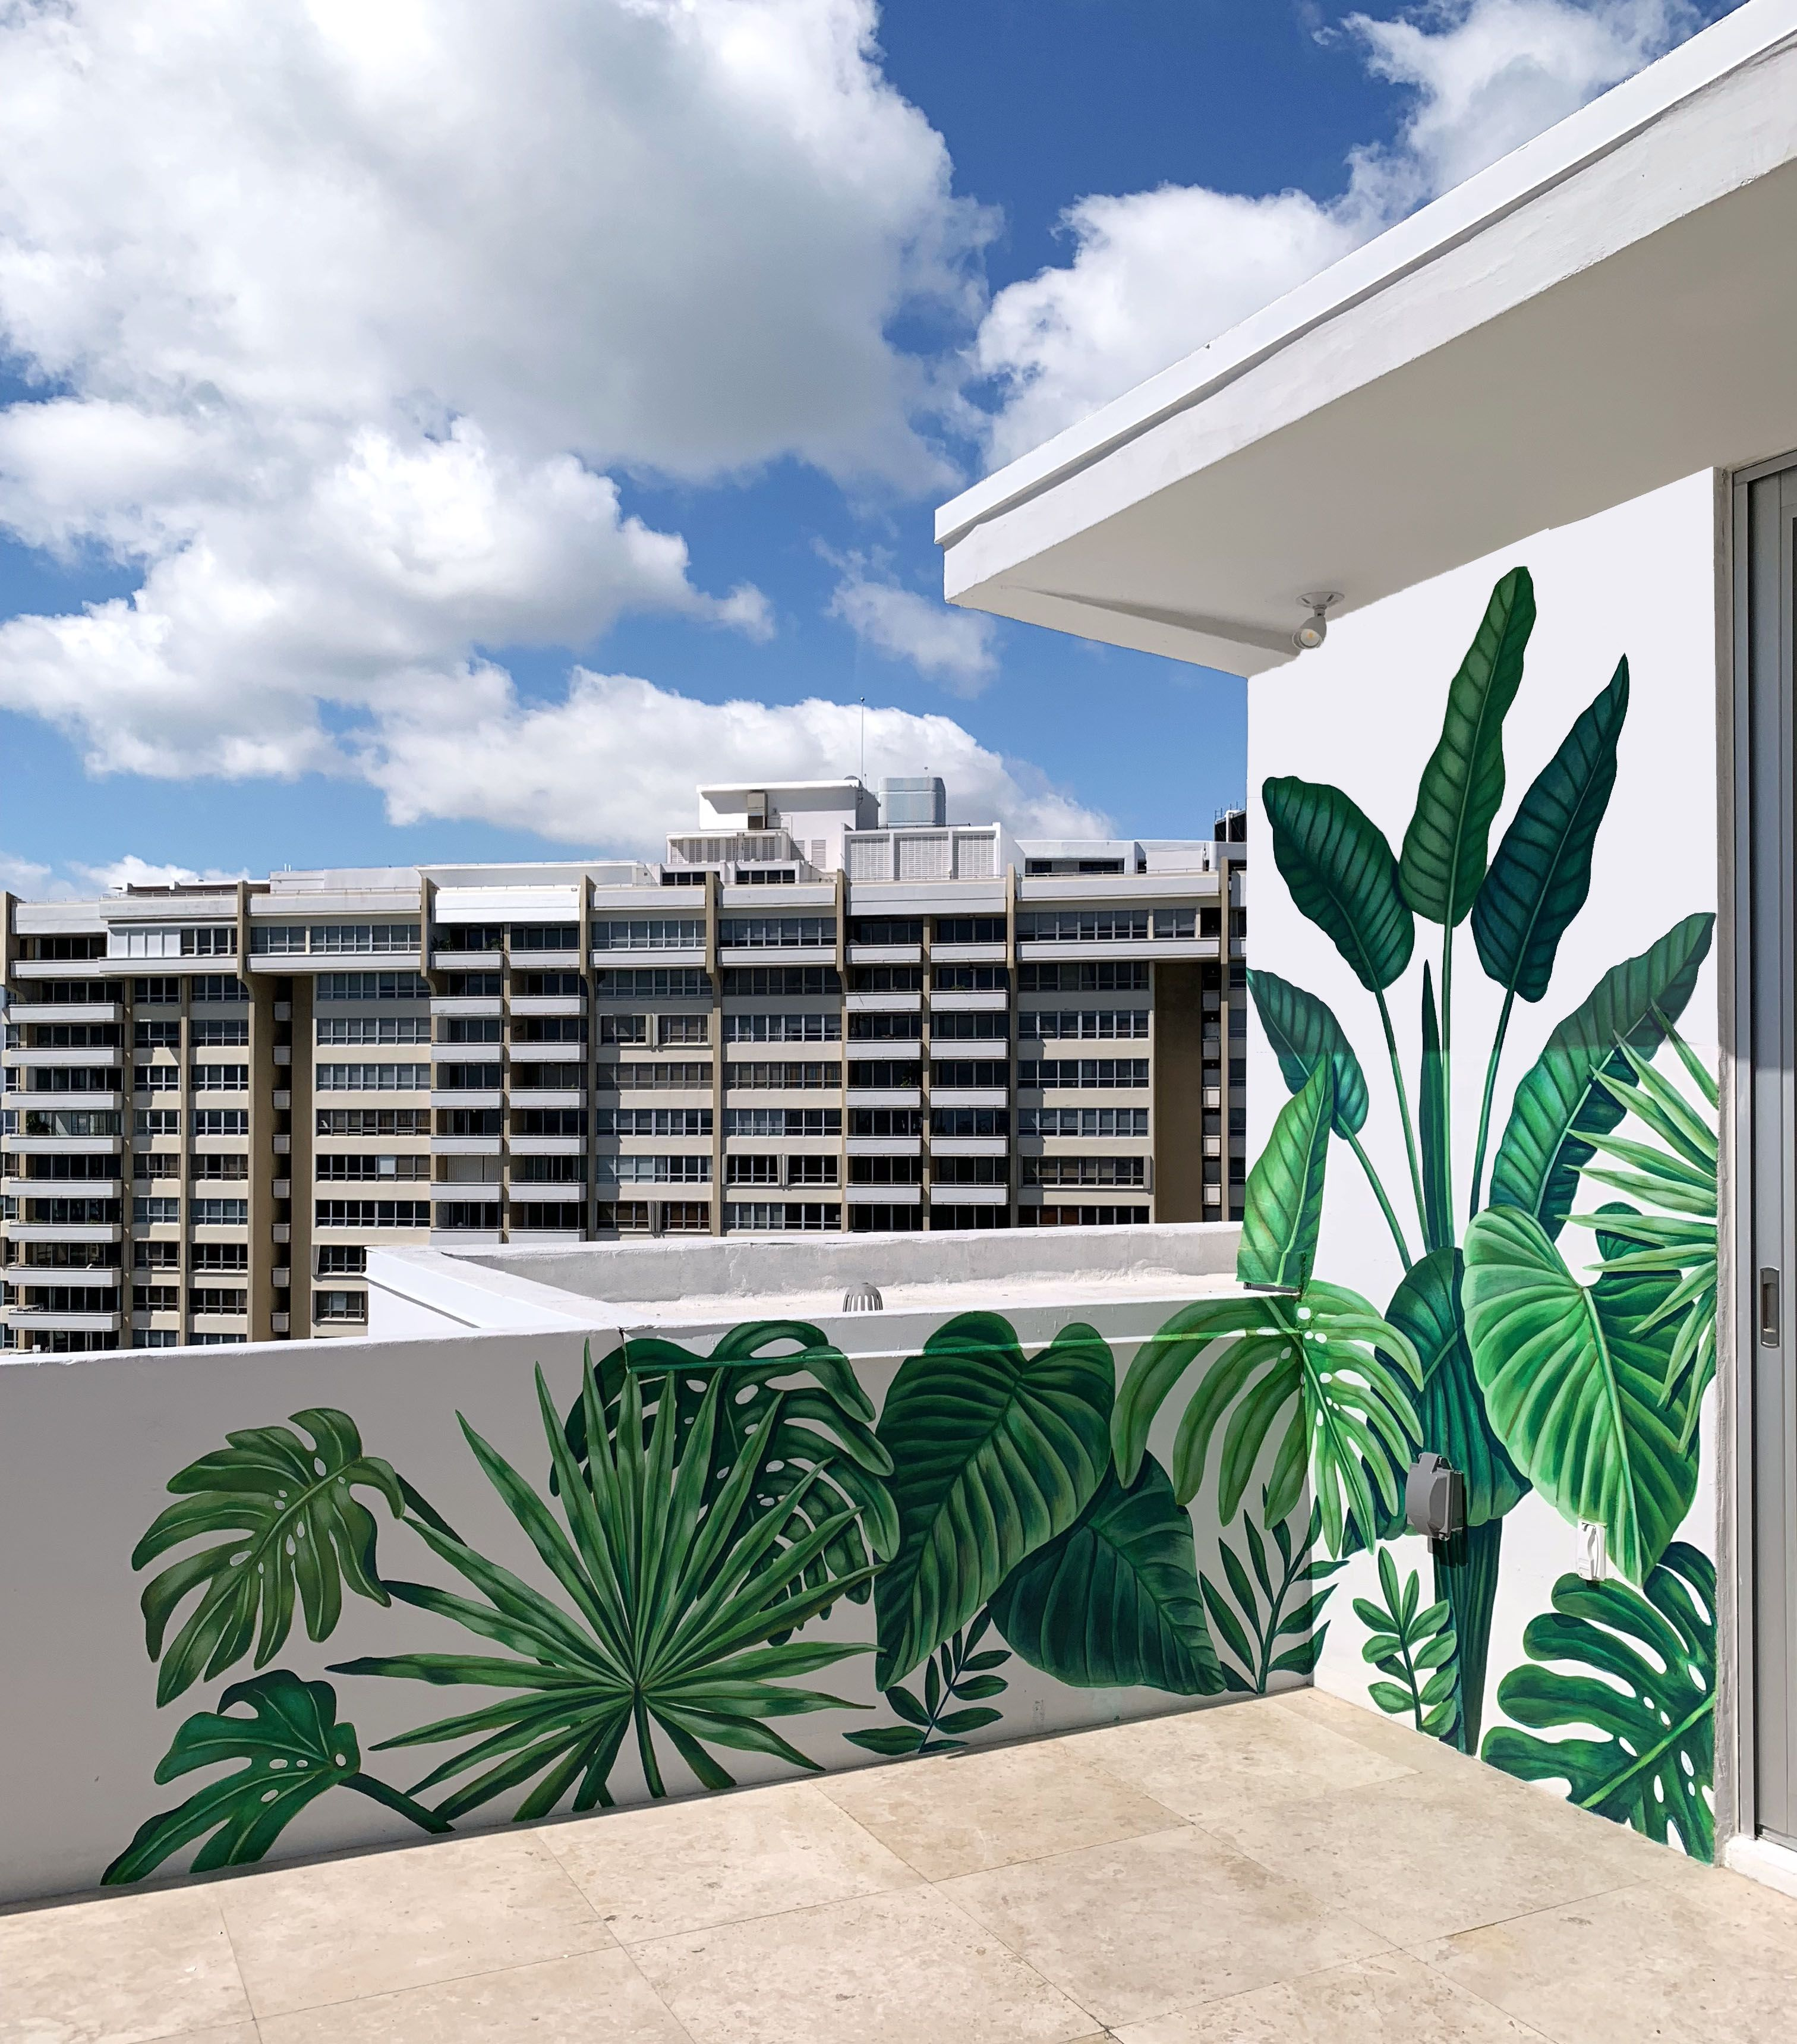 Mural Painted In Miami Beach For A Client By Nscb Studios With